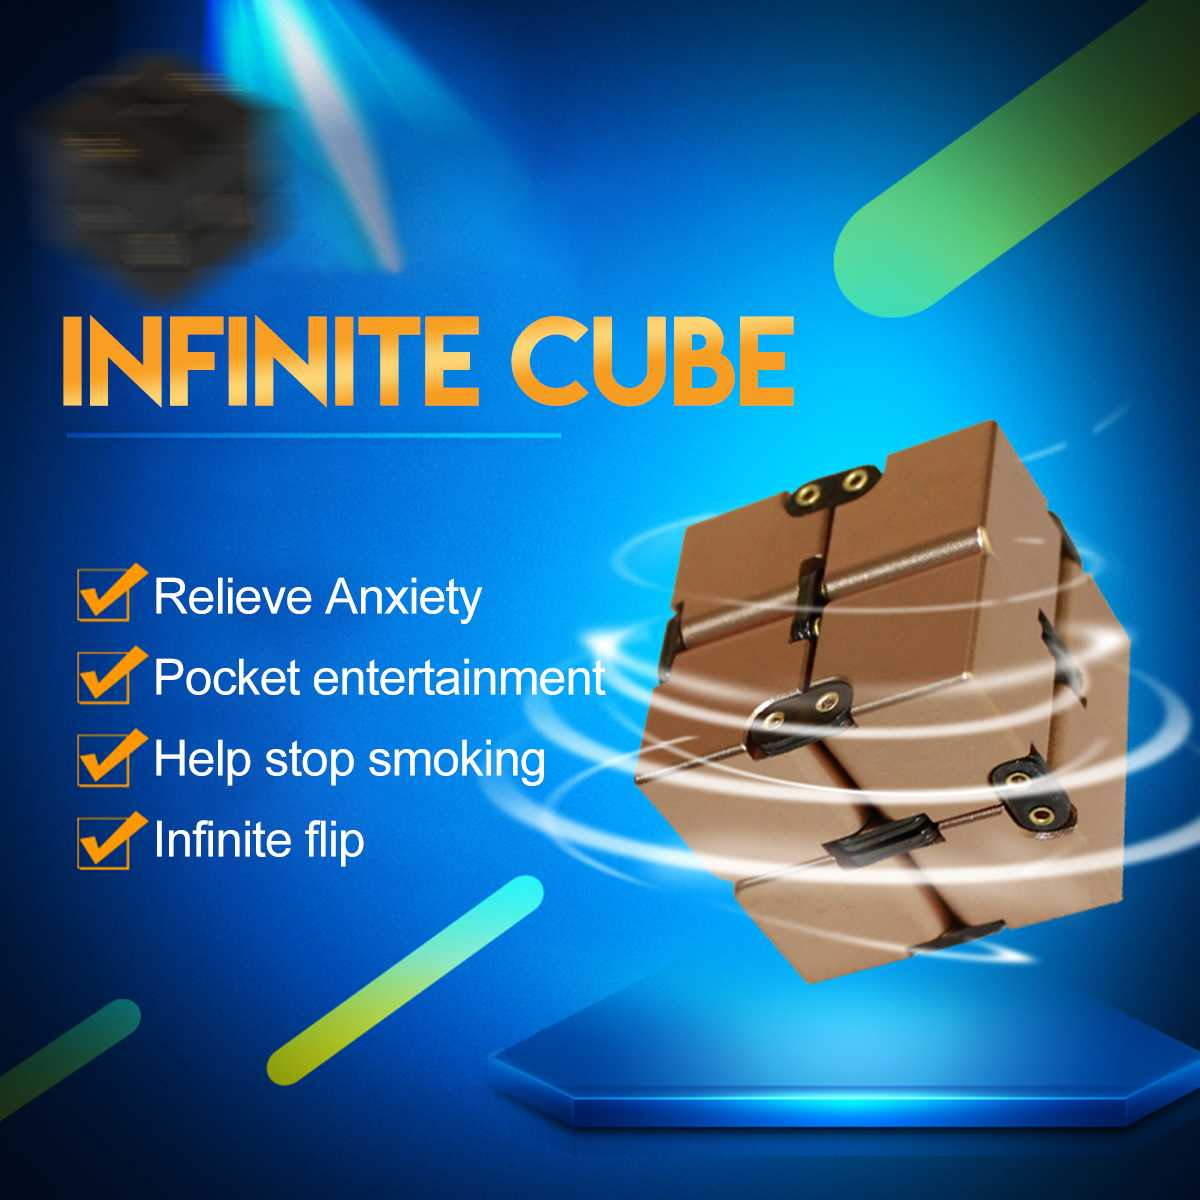 Mini Infinit Juguetes Cubes Anxiety Stress Relief Office Working Toy 4x4x4cm Hand Killing Time For Kids Adults Stress Desk Toy